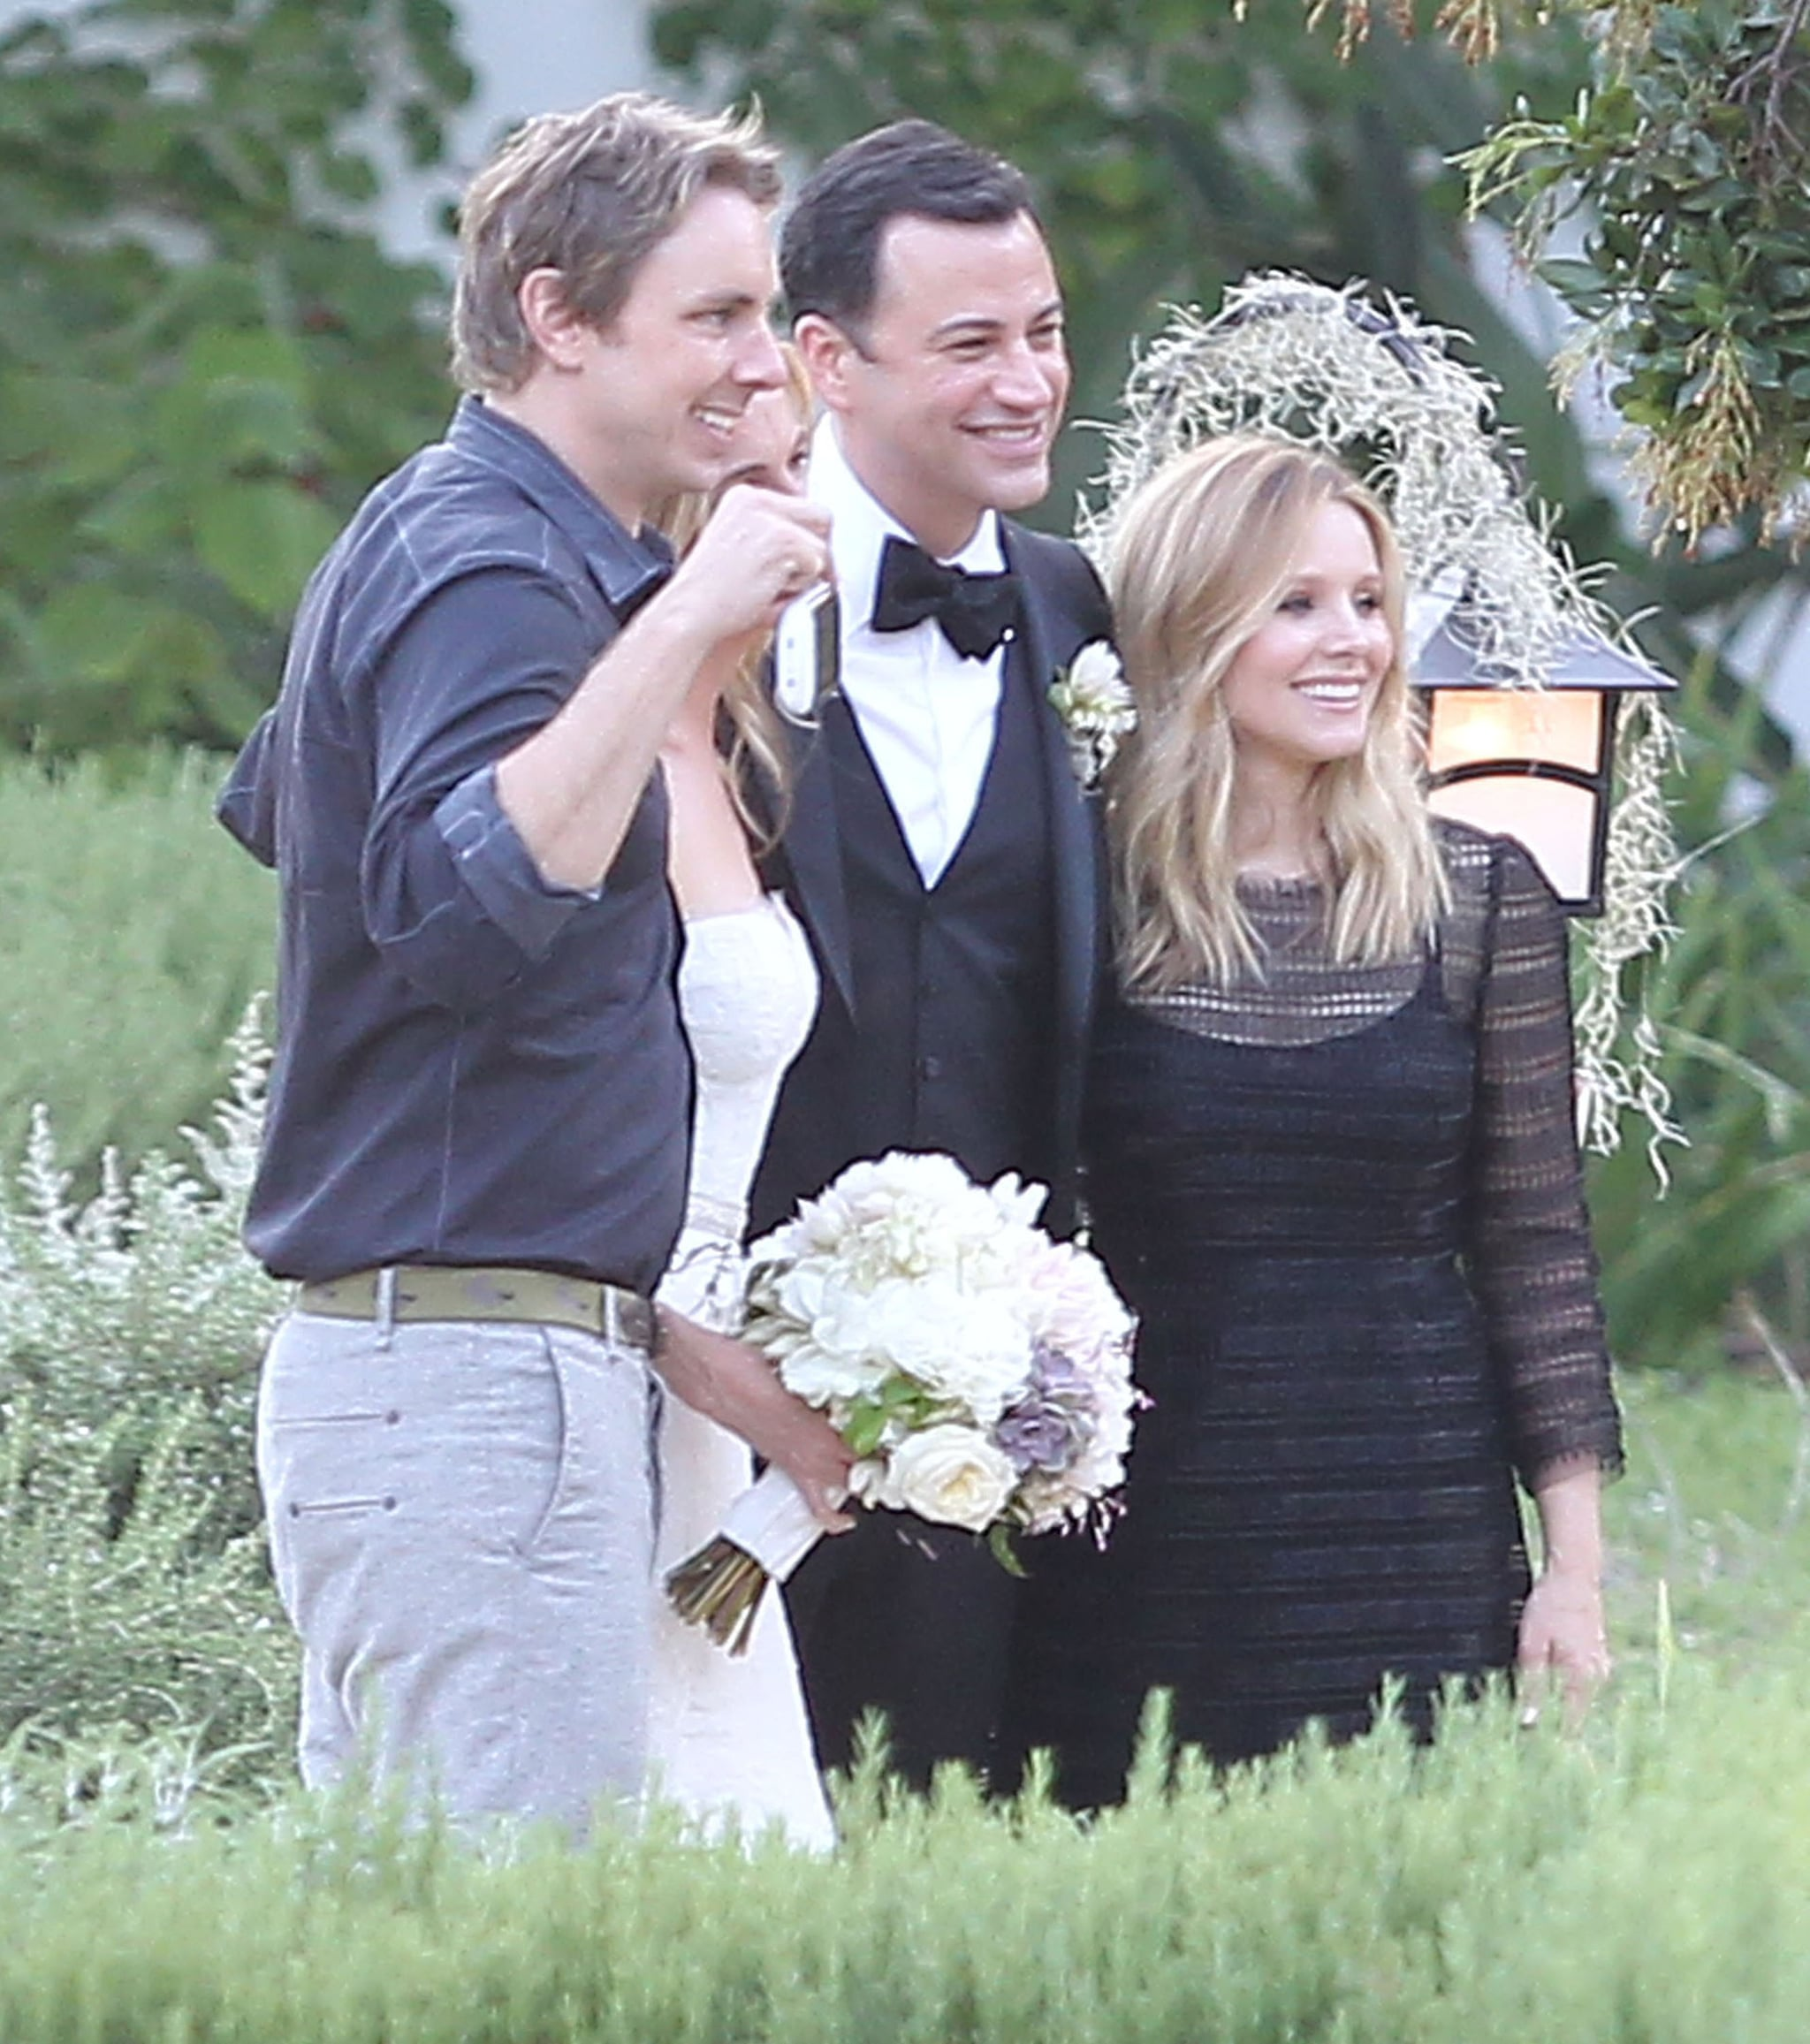 Kristen bell and dax shepard posed with jimmy kimmel at for Dax shepard and kristen bell wedding